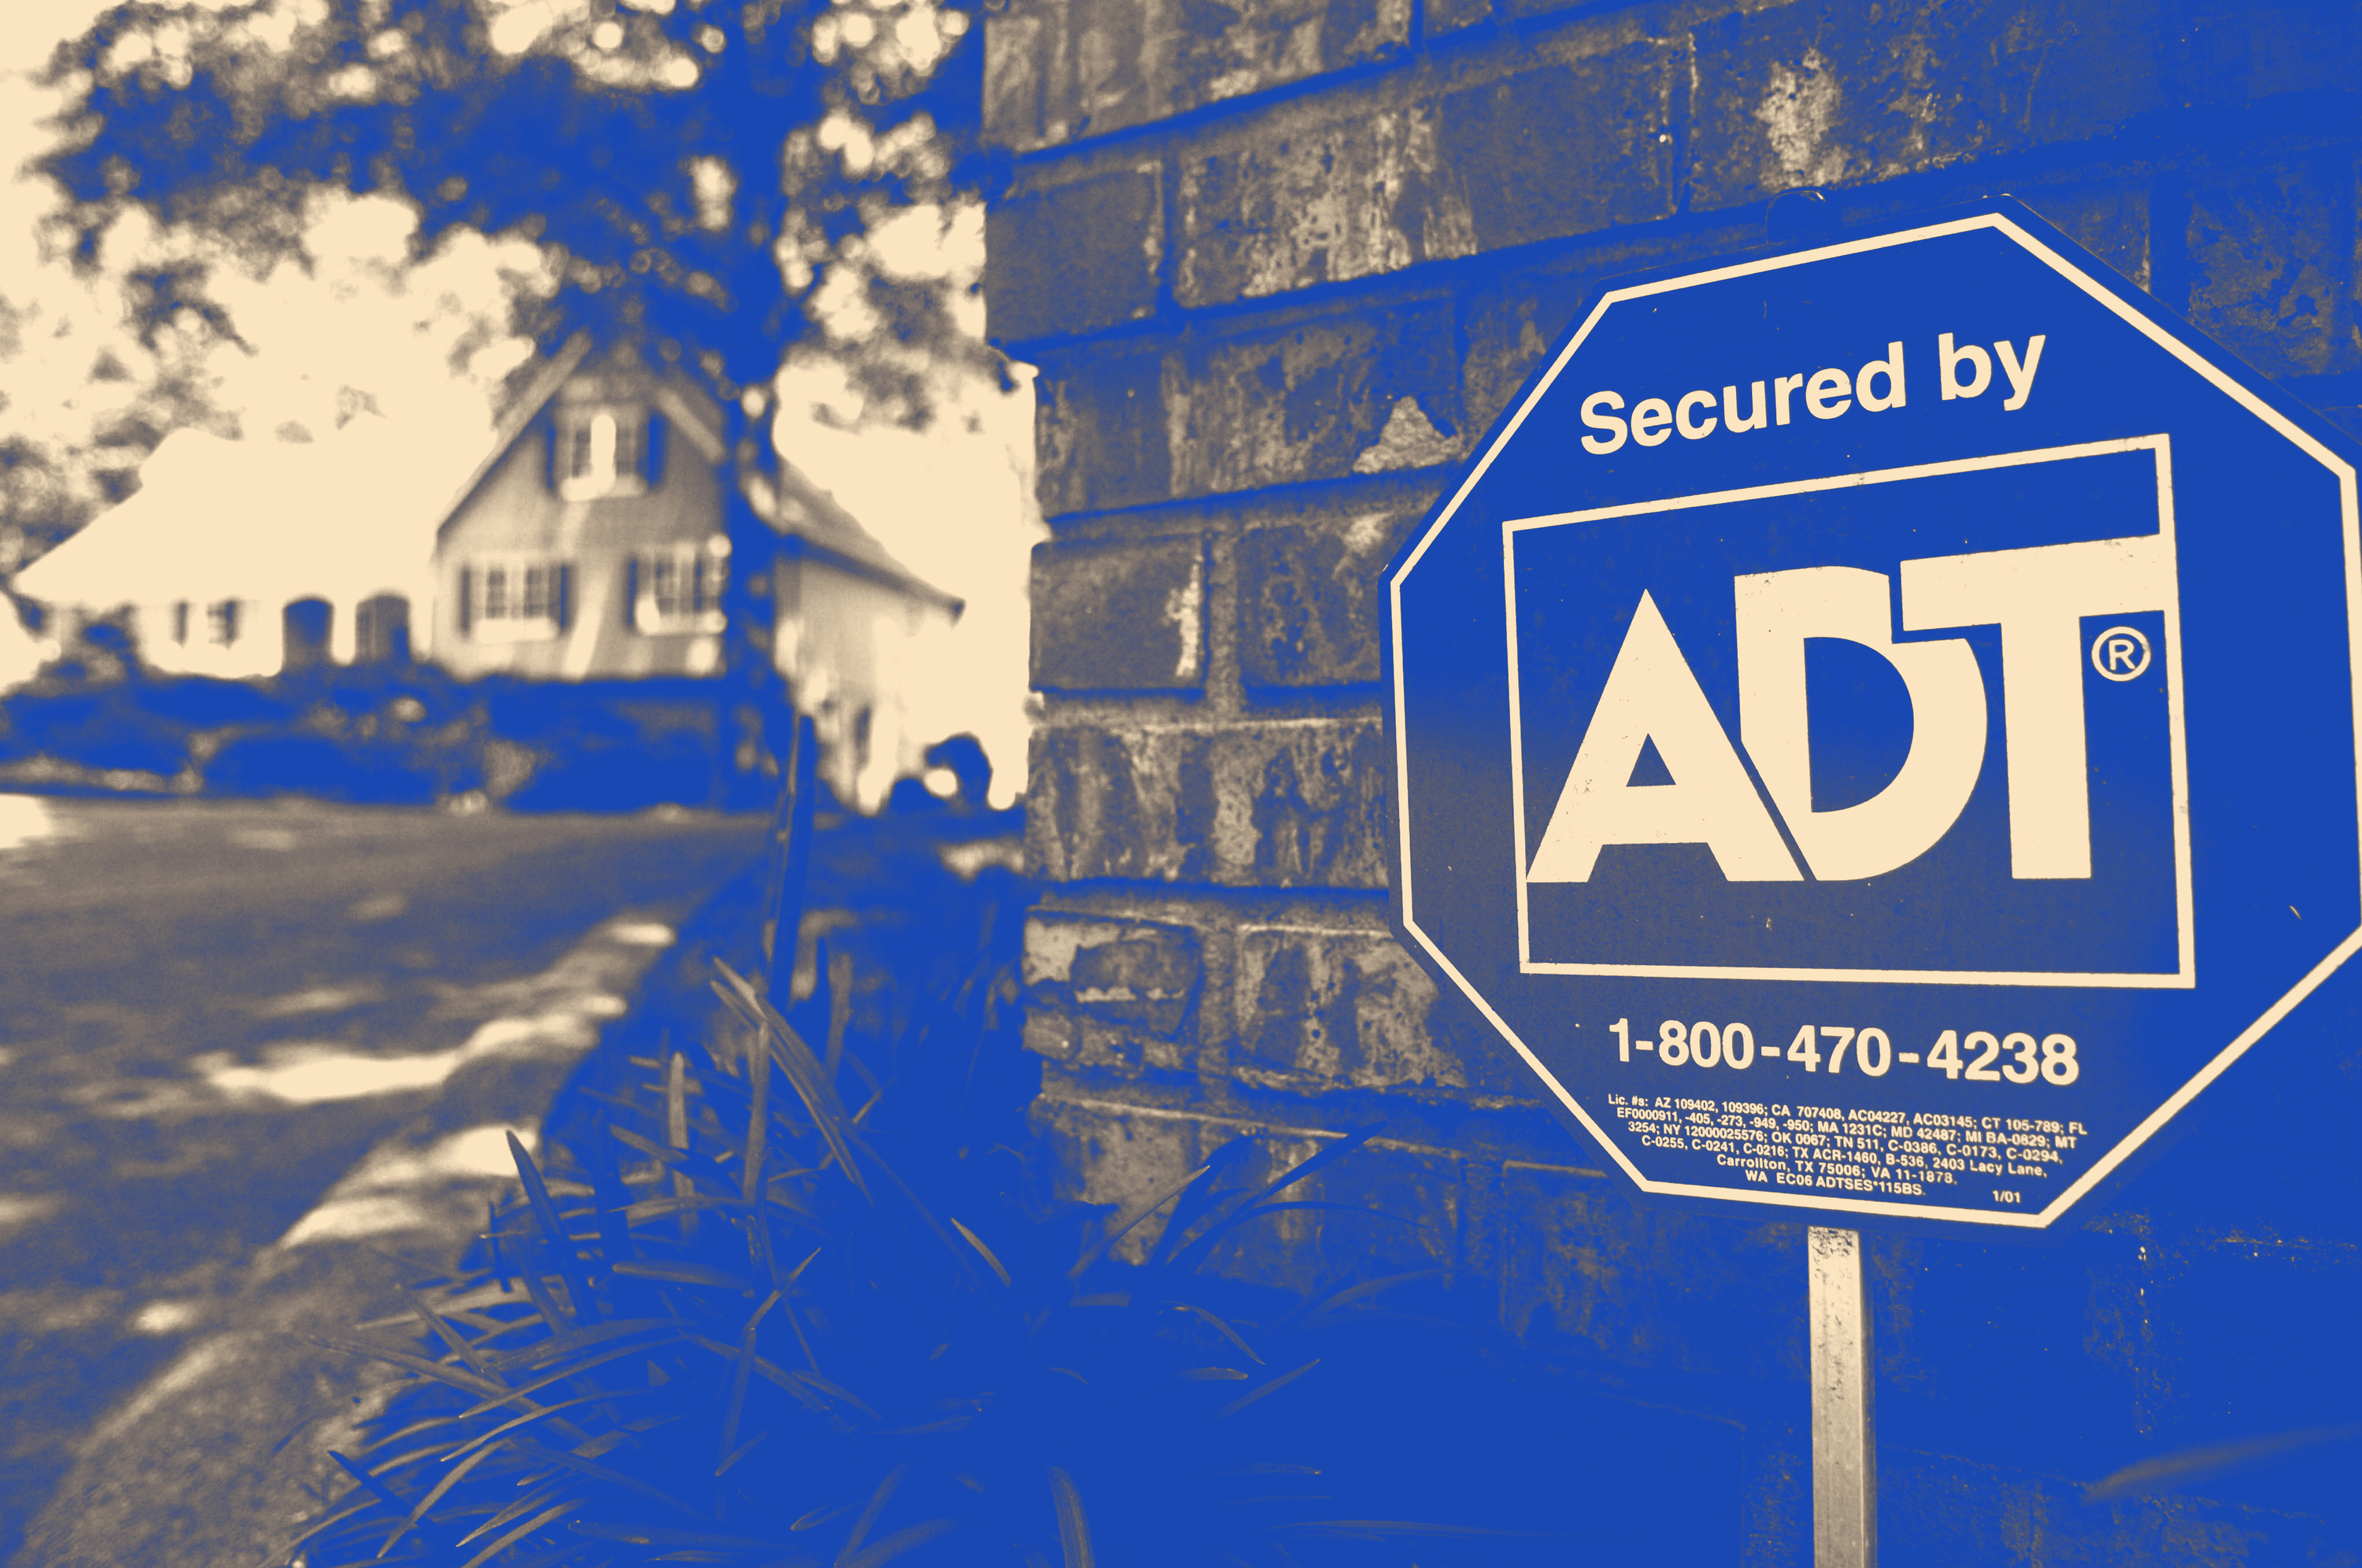 Contrary to earlier reports, ADT did not buy a Super Bowl commercial